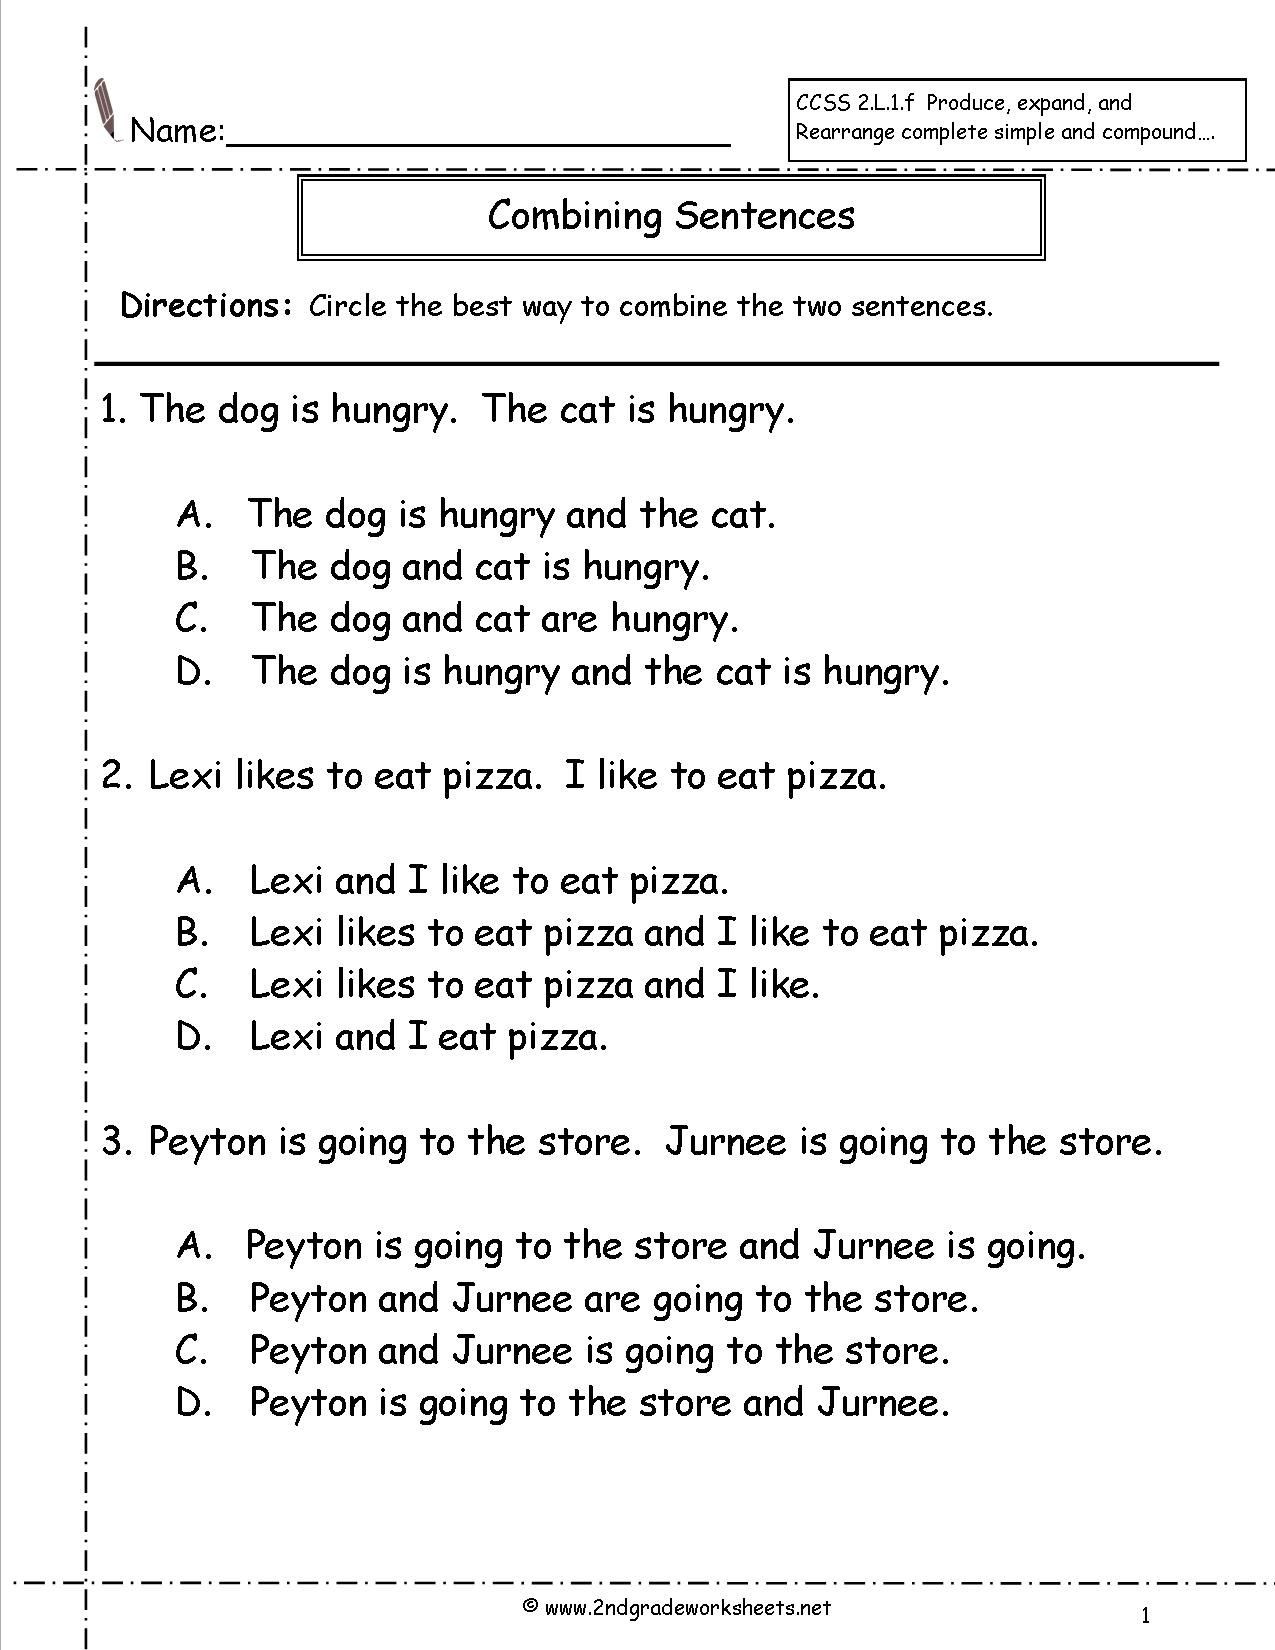 Topic Sentence Worksheet 2nd Grade Bining Sentences Worksheet with Images